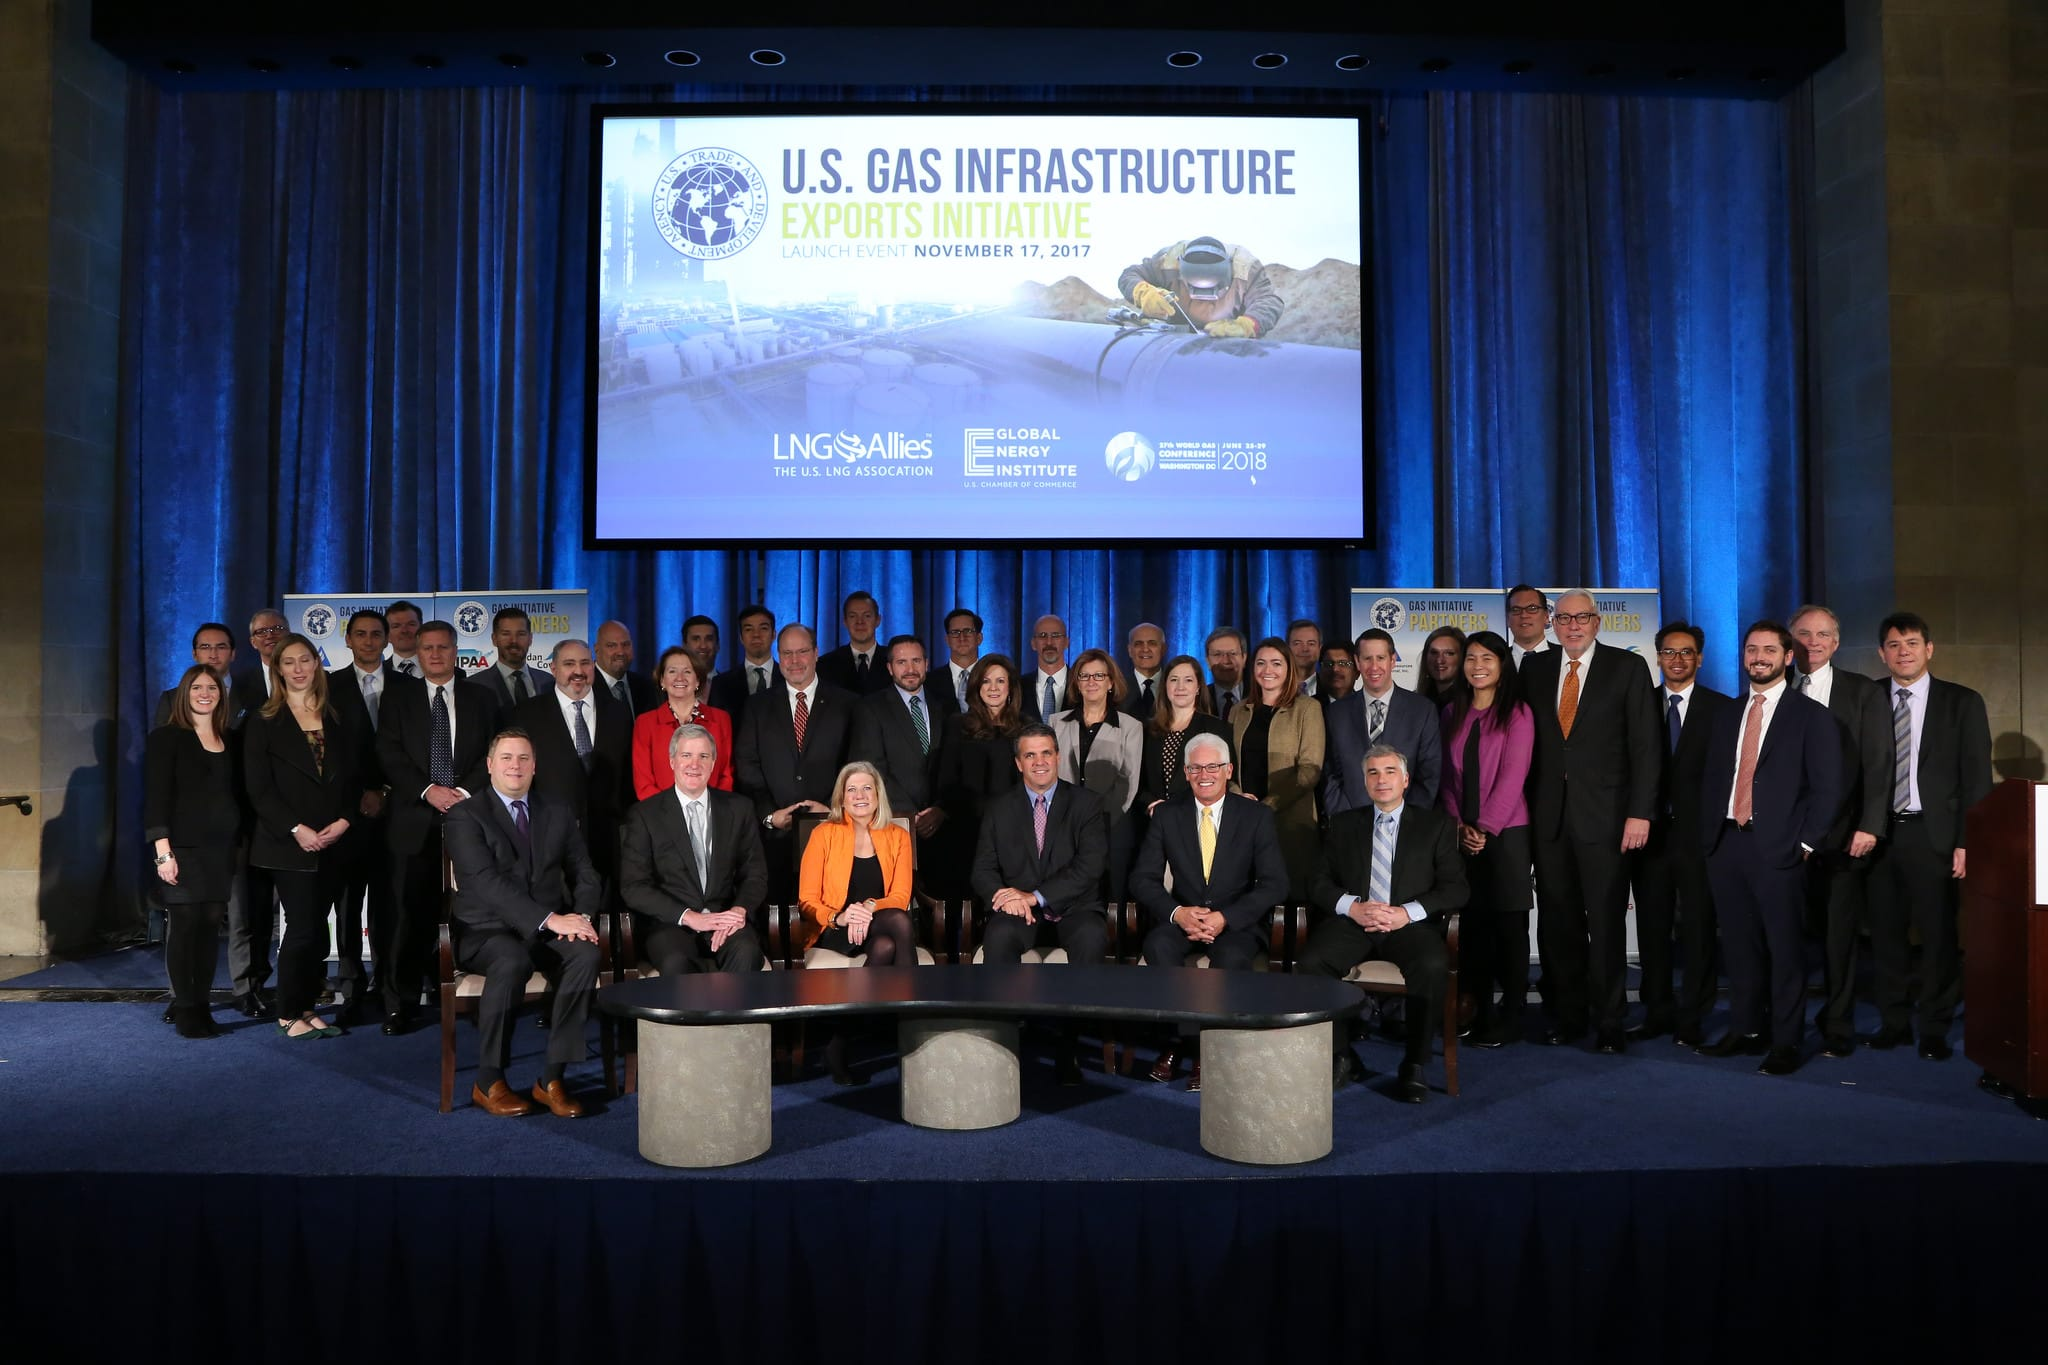 The U.S. Gas Infrastructure Exports Initiative was unveiled by the U.S. Trade Development Agency on November 17, 2017 to promote sales of American natural gas.